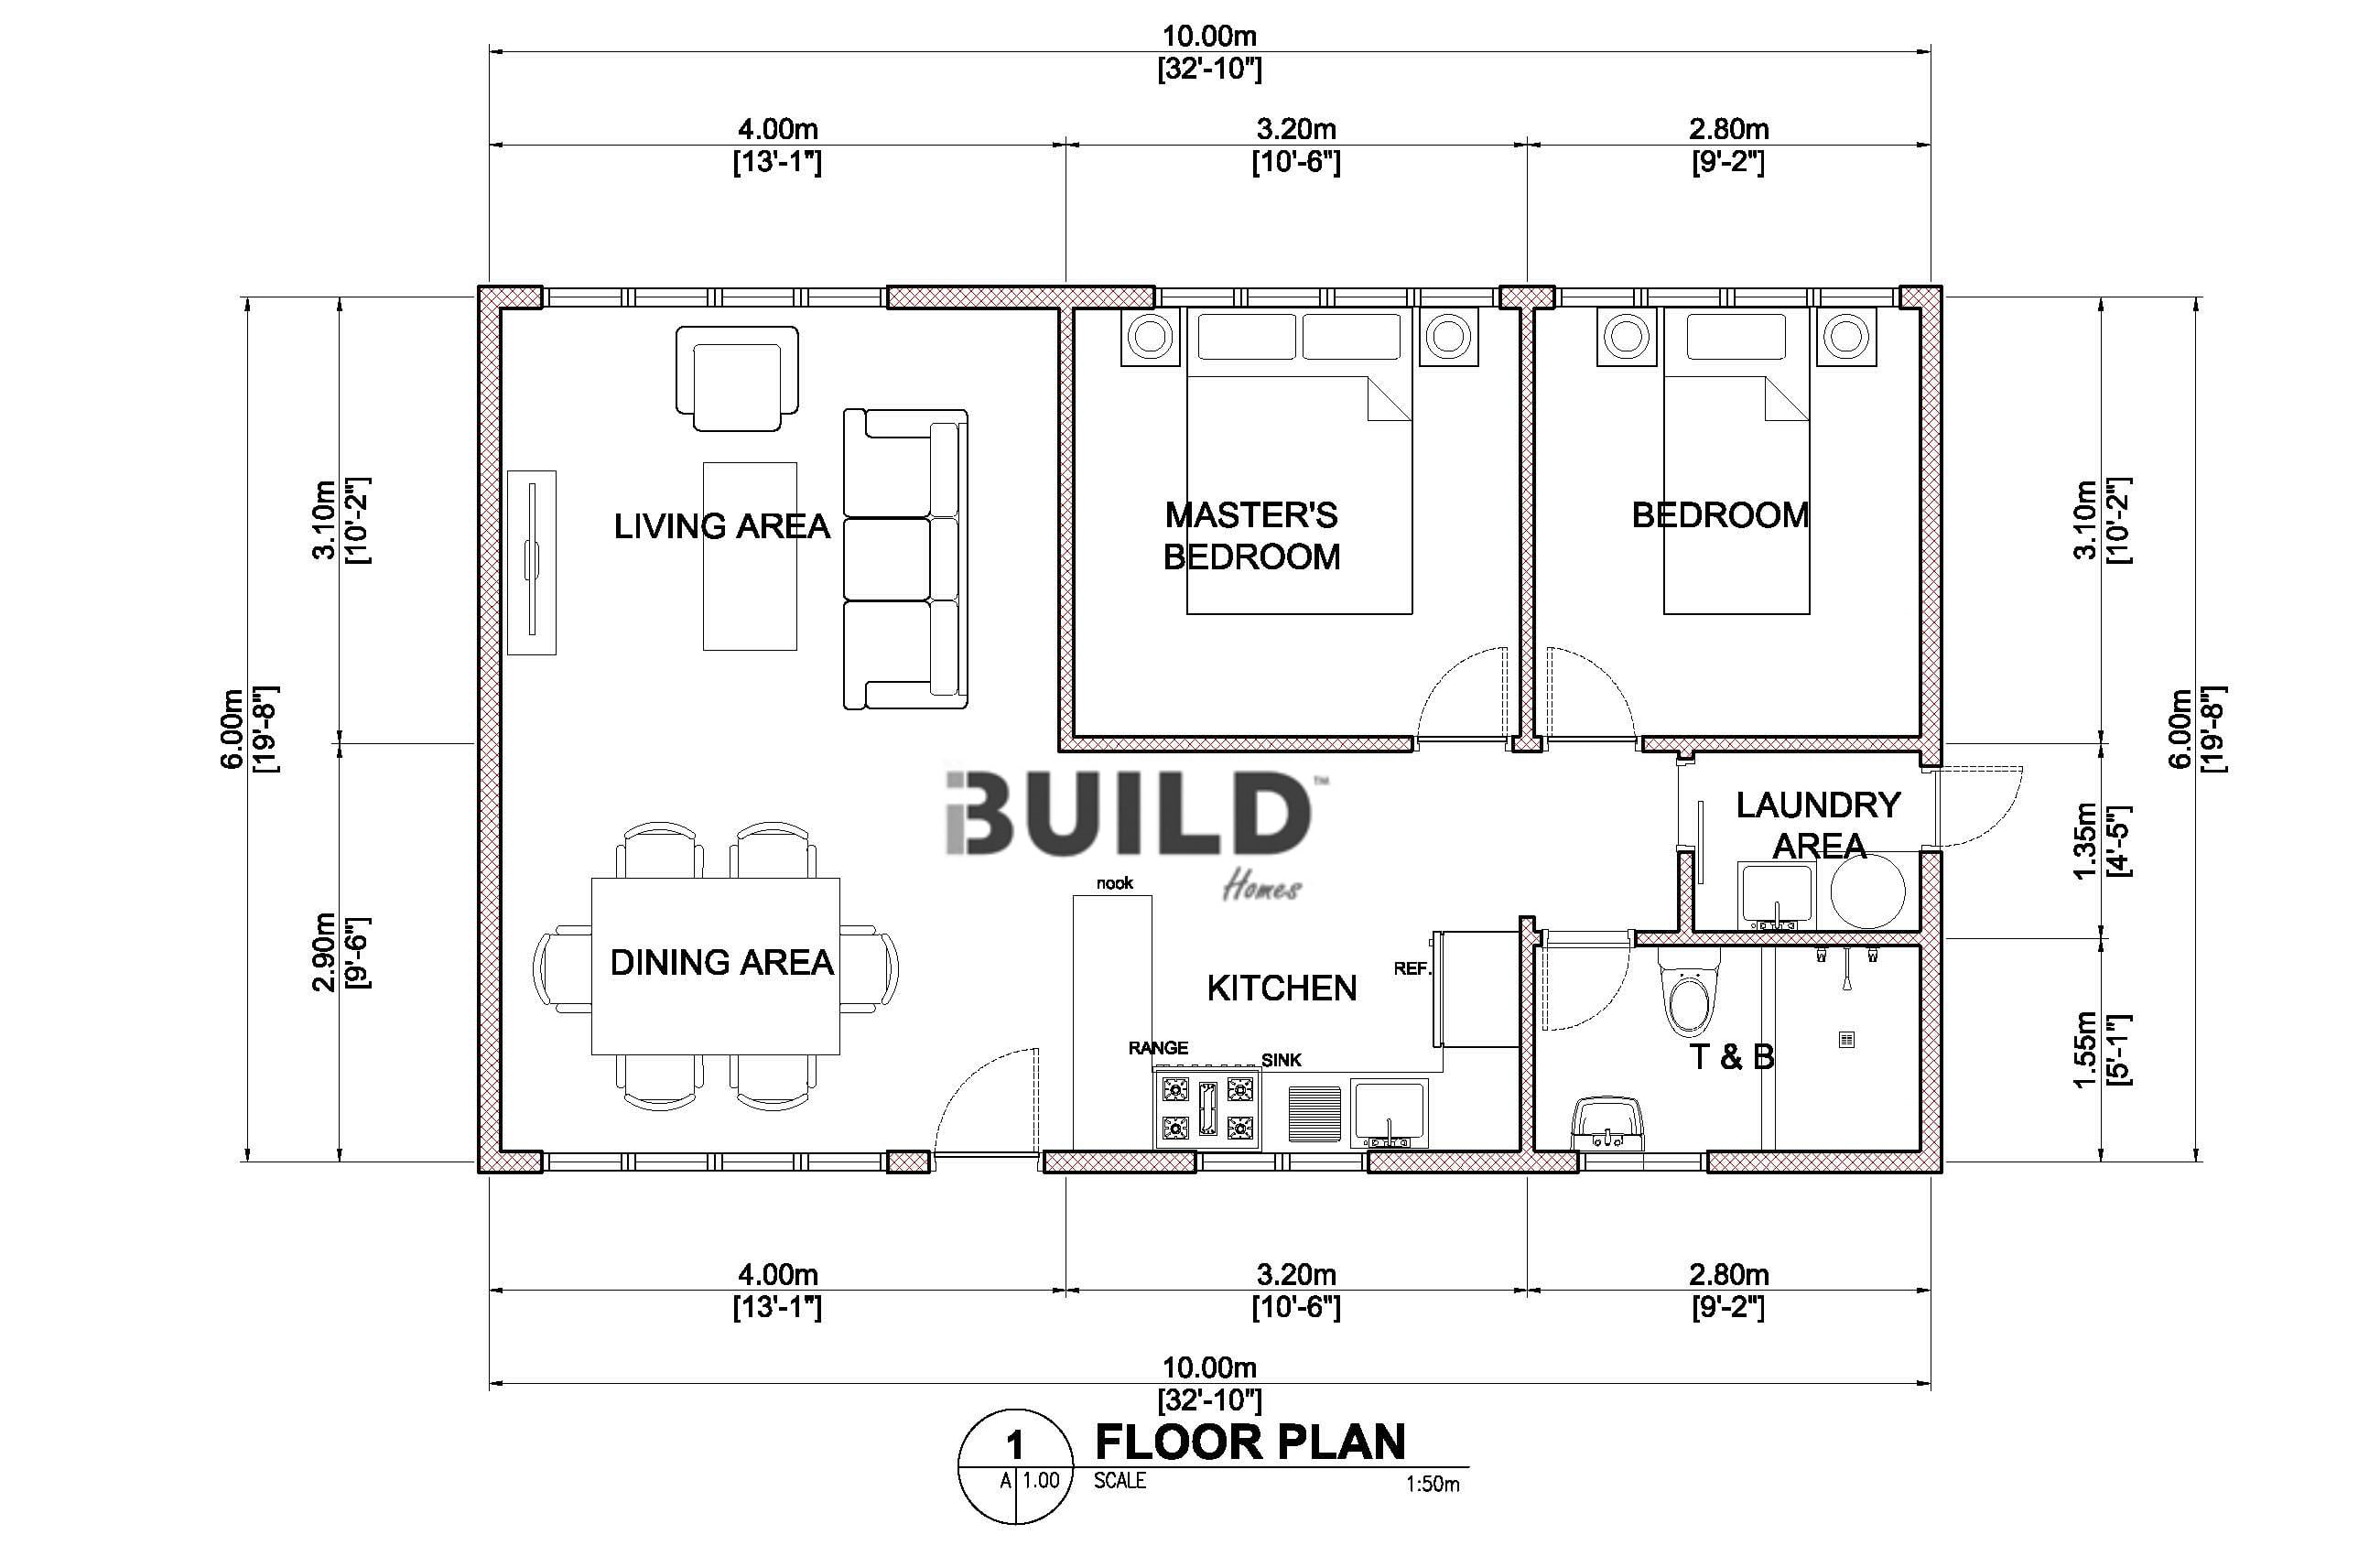 Granny flats parramatta kit homes parramatta for Floor plans granny flats